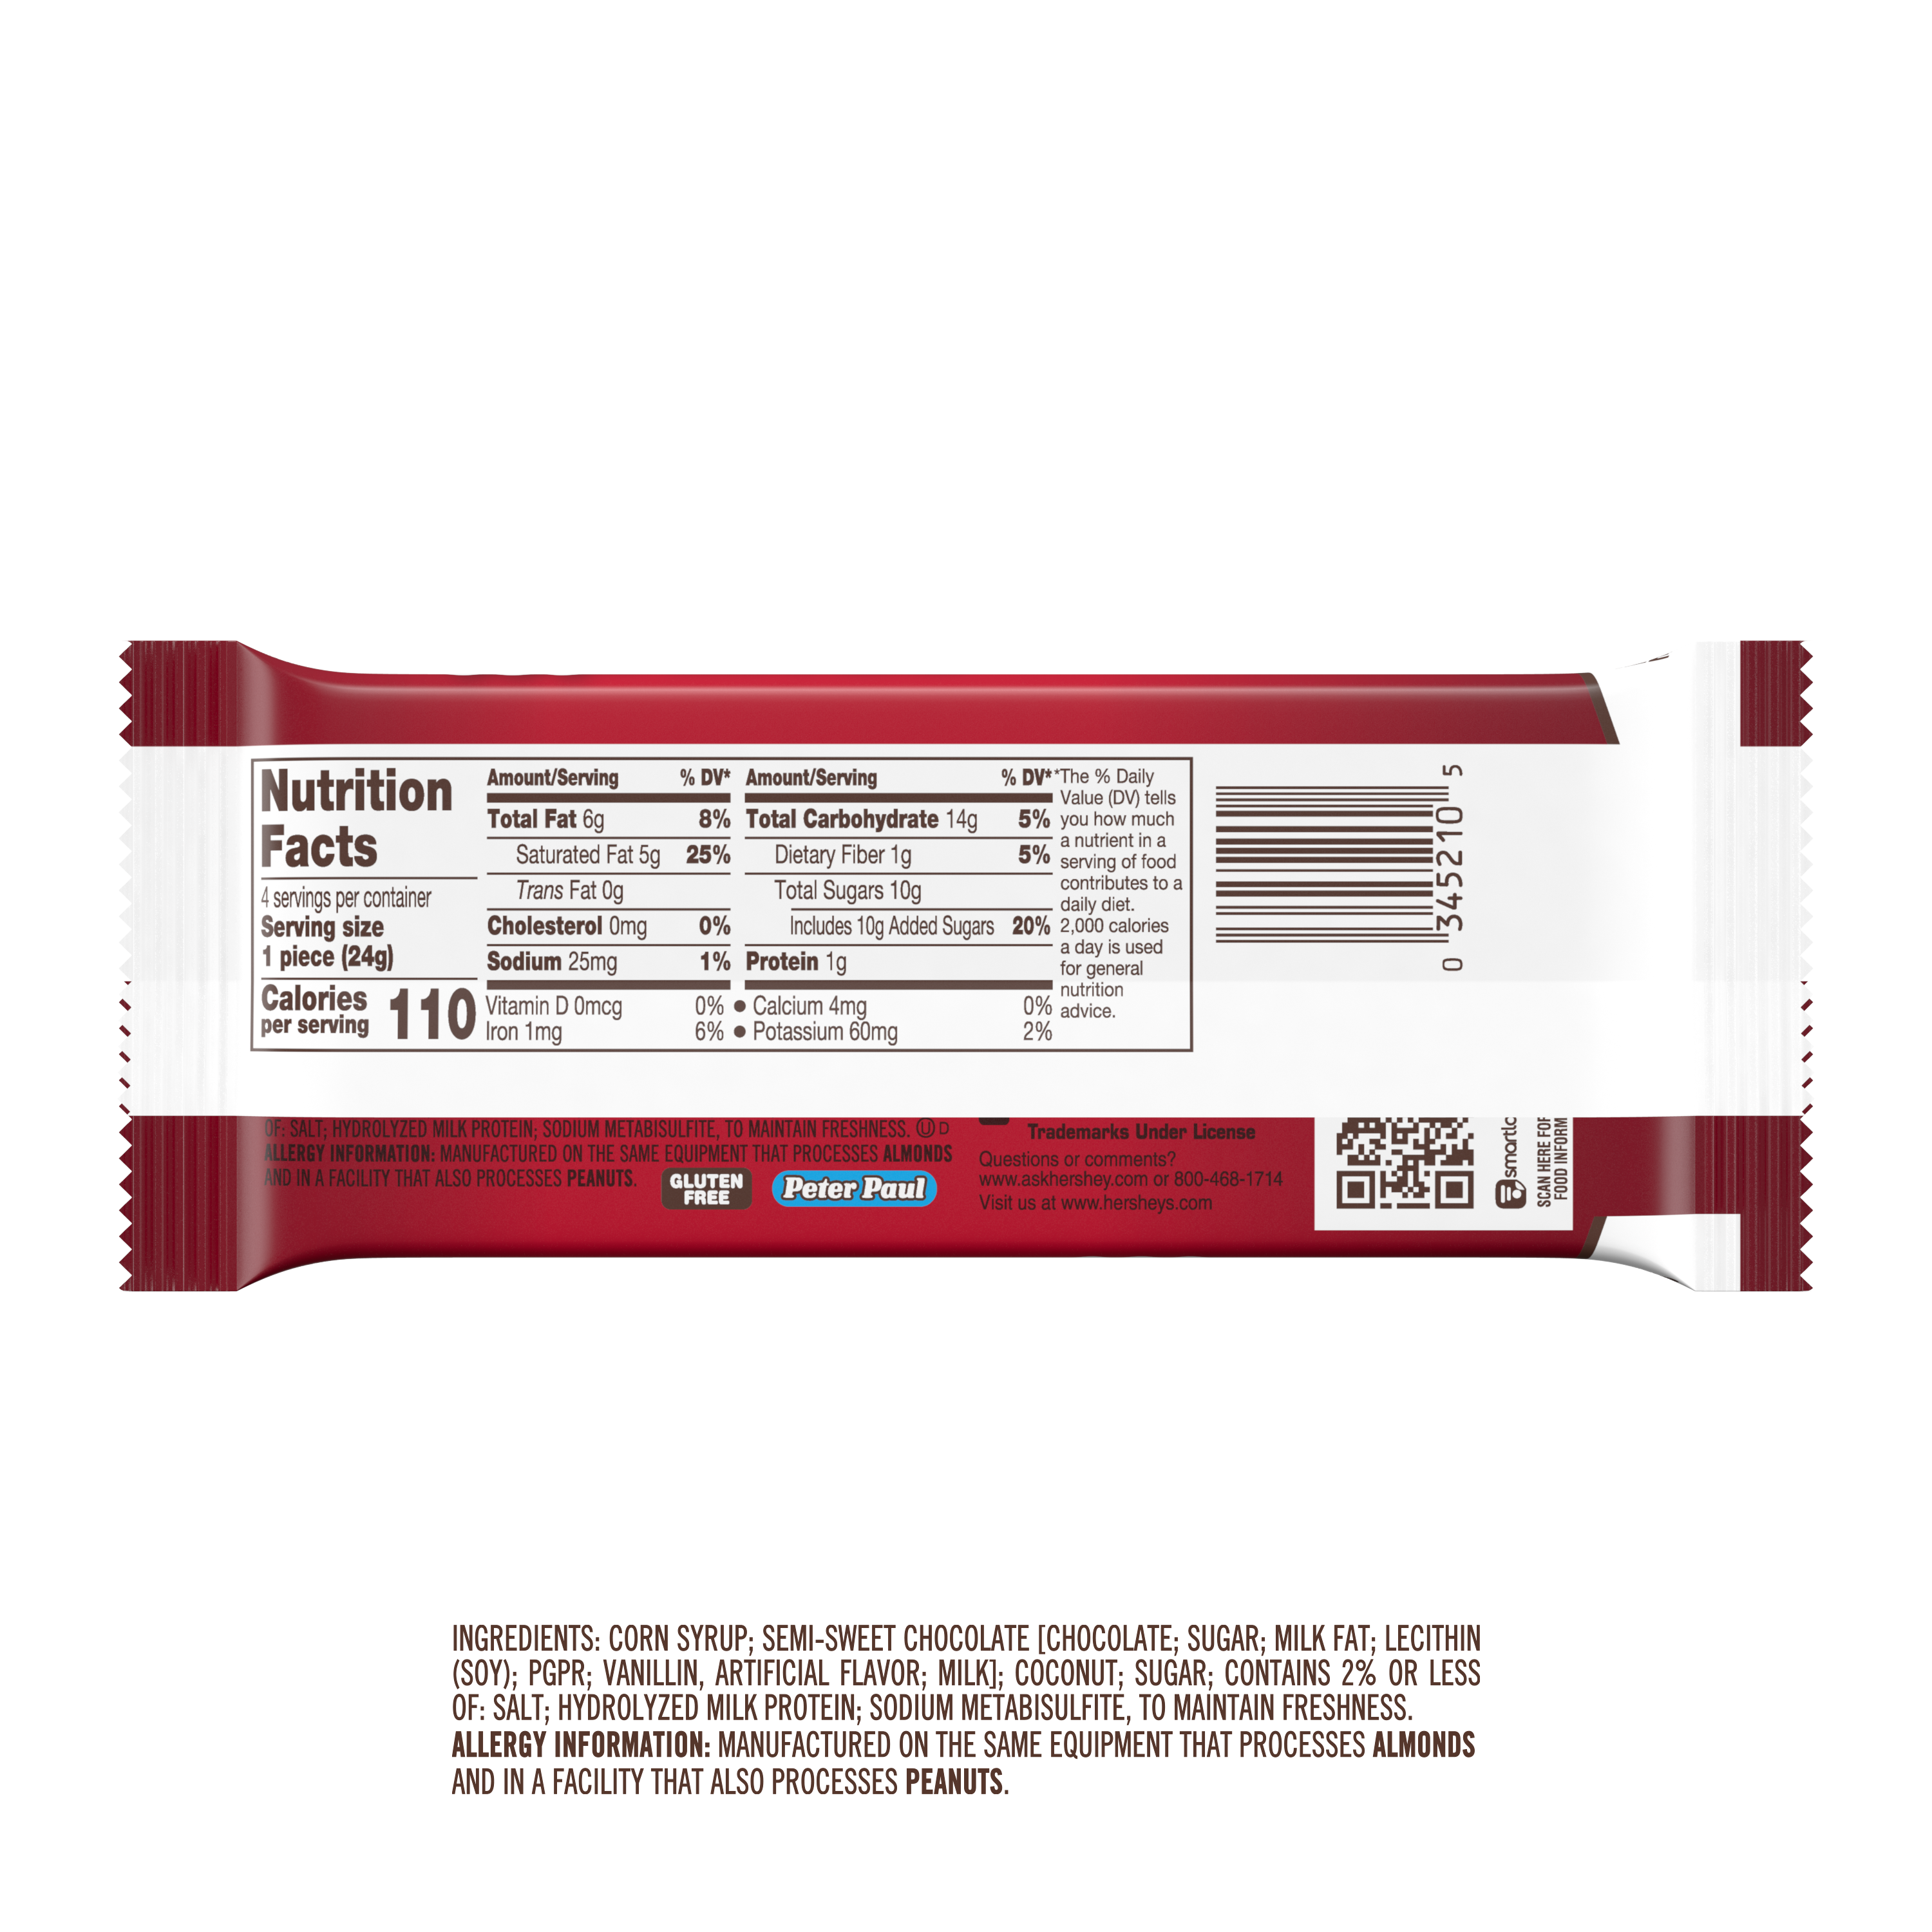 MOUNDS Dark Chocolate and Coconut King Size Candy Bar, 3.5 oz, 4 pieces - Back of Package